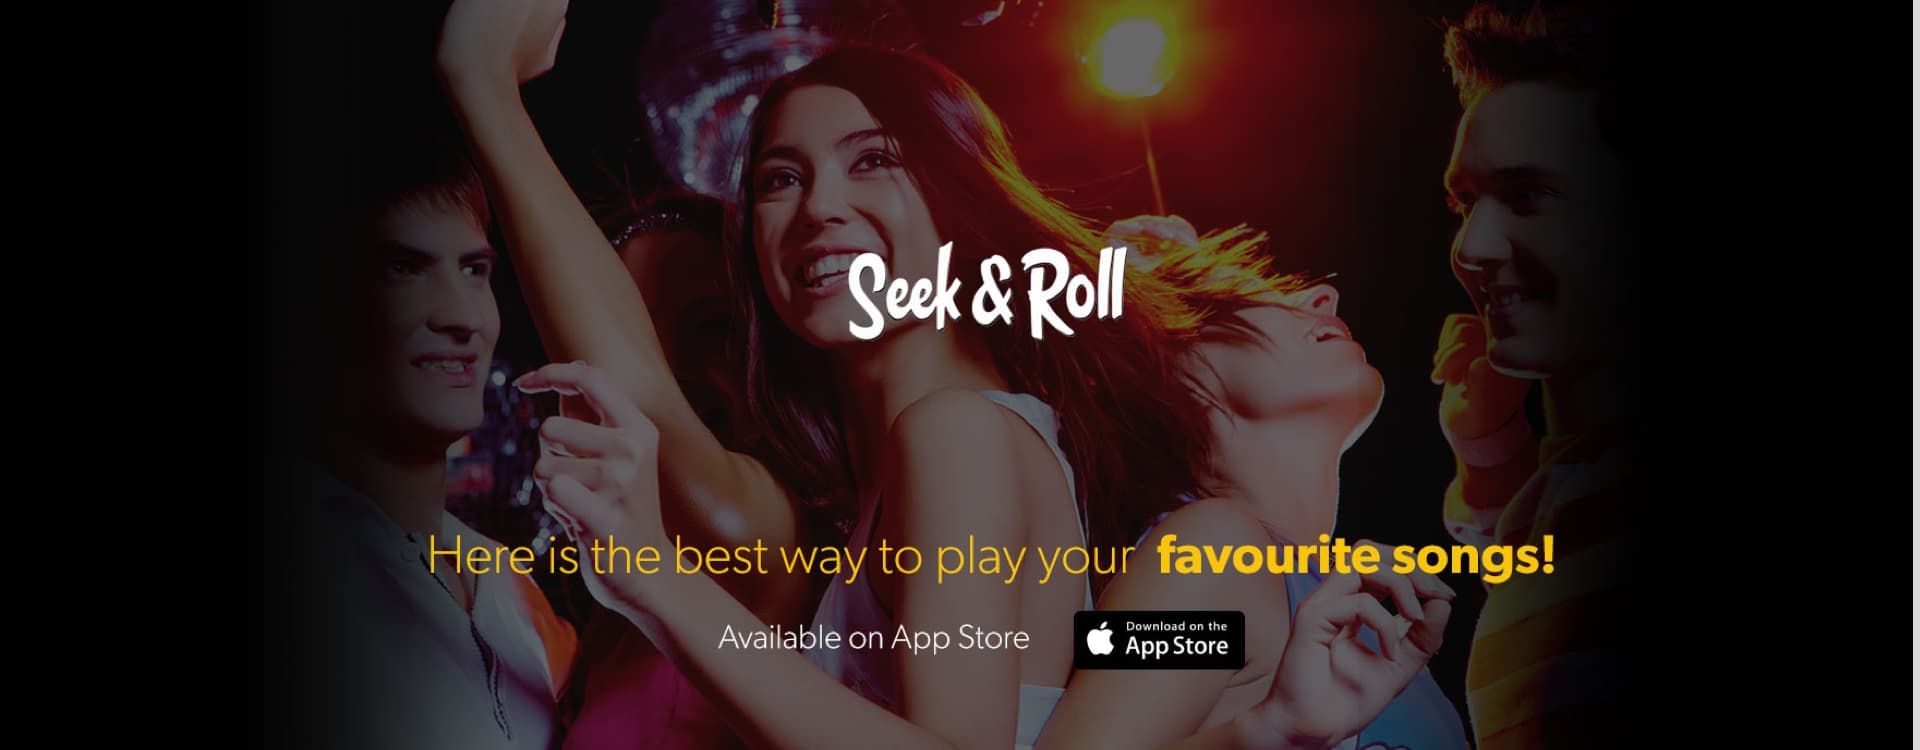 seek_and_roll_header